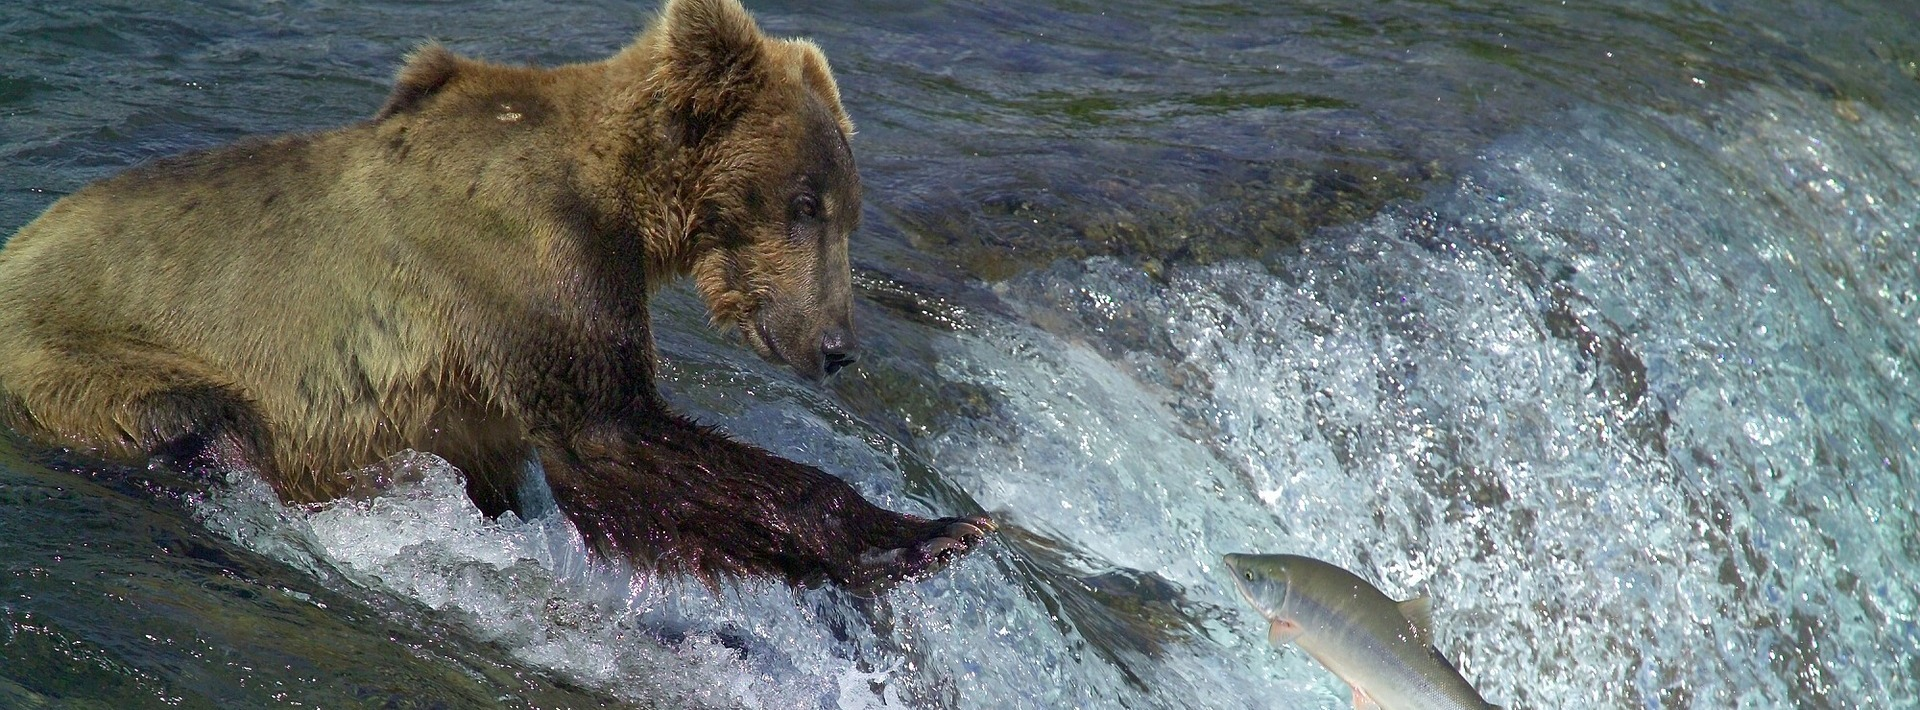 kodiak-brown-bear-2042153_1920